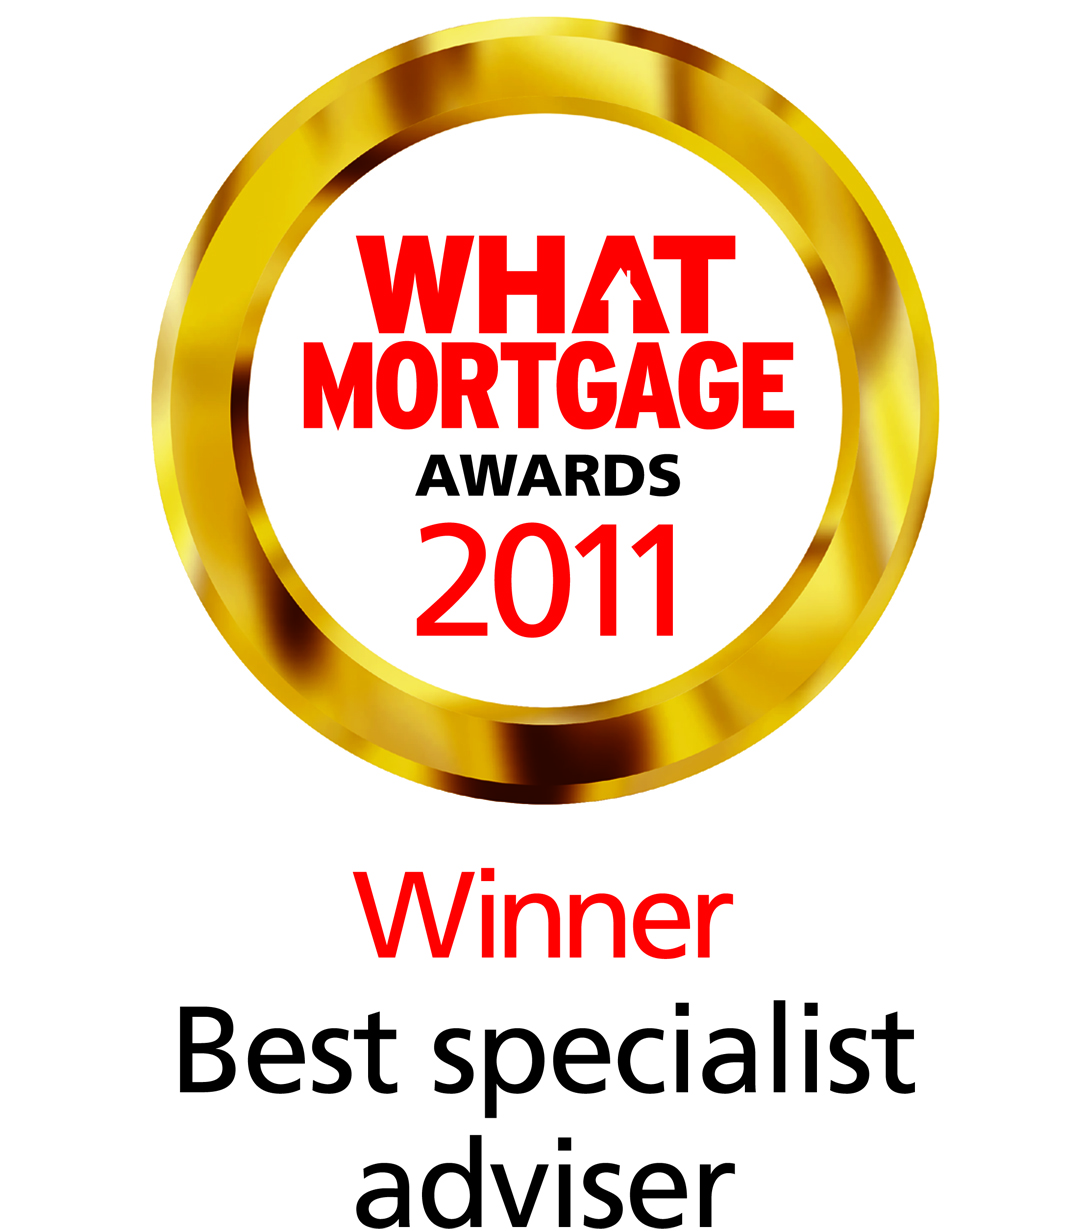 Best Specialist Adviser - What Mortgage Awards 2011